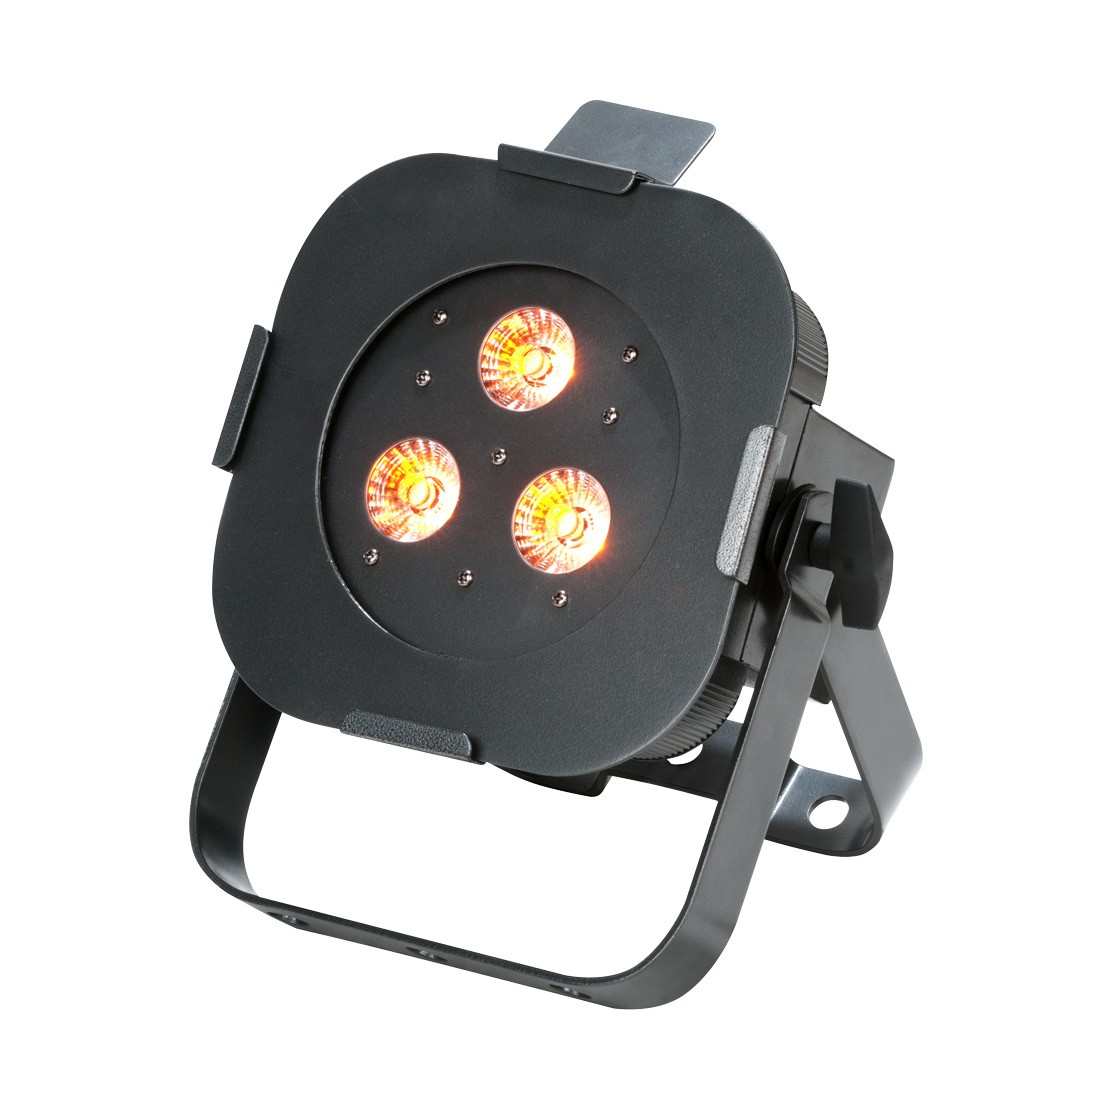 American DJ ULTRA HEX PAR3 3 x 10w 6-In-1 LED Par Fixture with 40-Degree Beam Angle